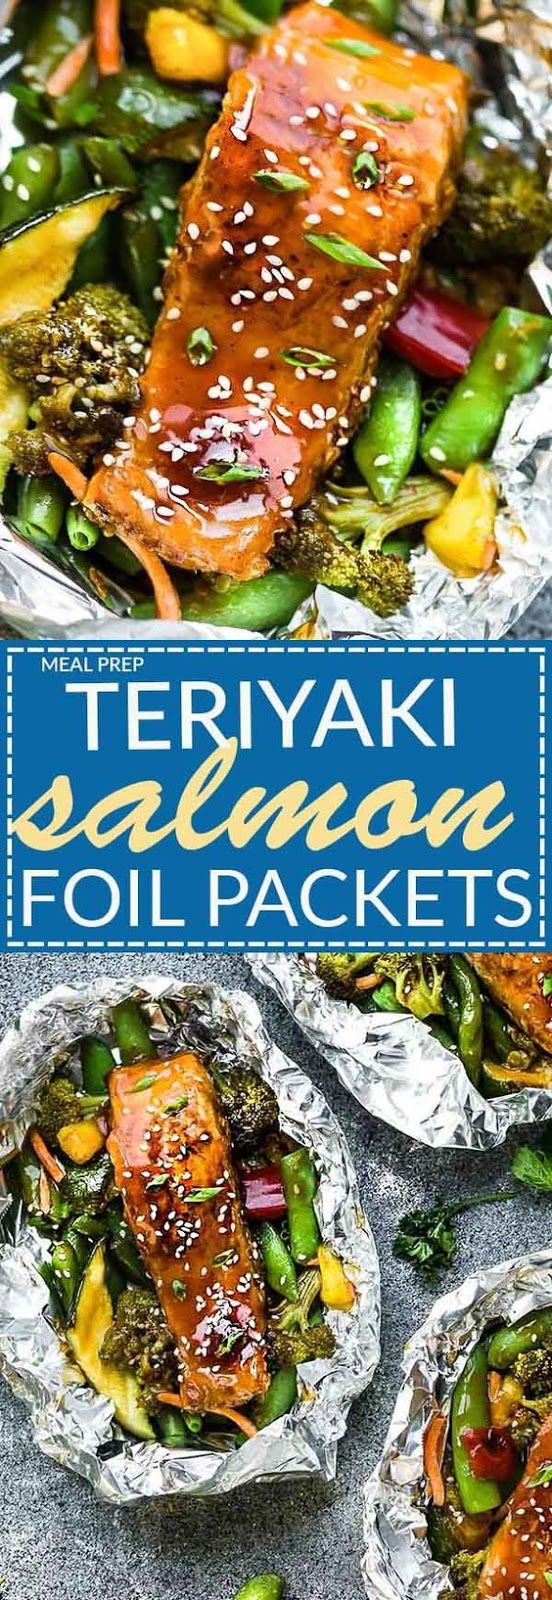 Teriyaki Salmon Foil Packets #teriyakisalmon